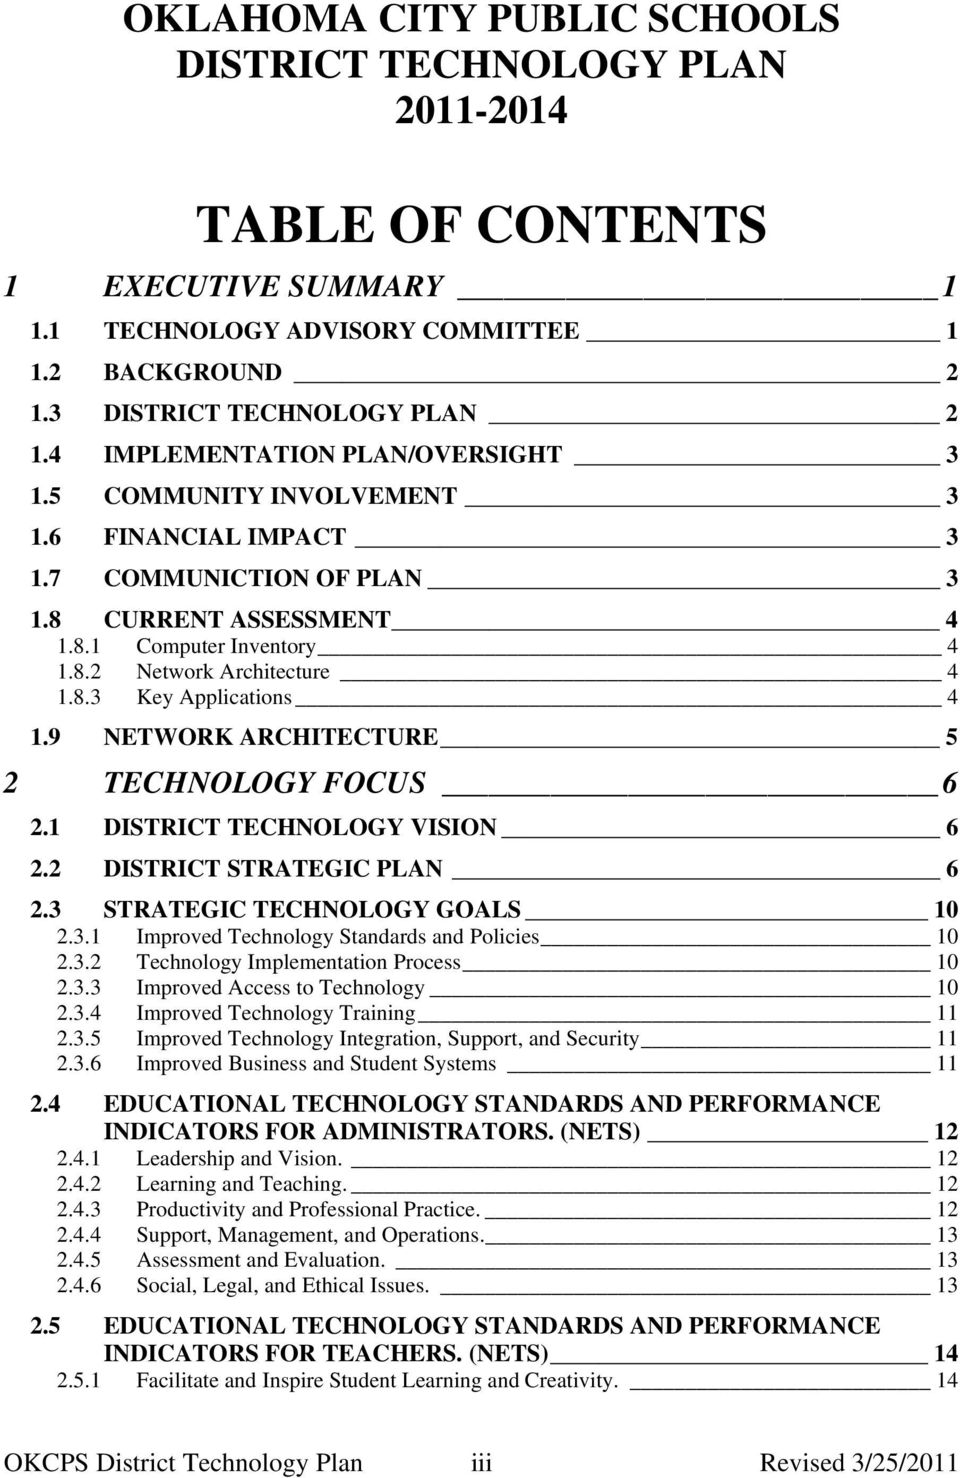 9 NETWORK ARCHITECTURE 5 2 TECHNOLOGY FOCUS 6 2.1 DISTRICT TECHNOLOGY VISION 6 2.2 DISTRICT STRATEGIC PLAN 6 2.3 STRATEGIC TECHNOLOGY GOALS 10 2.3.1 Improved Technology Standards and Policies 10 2.3.2 Technology Implementation Process 10 2.